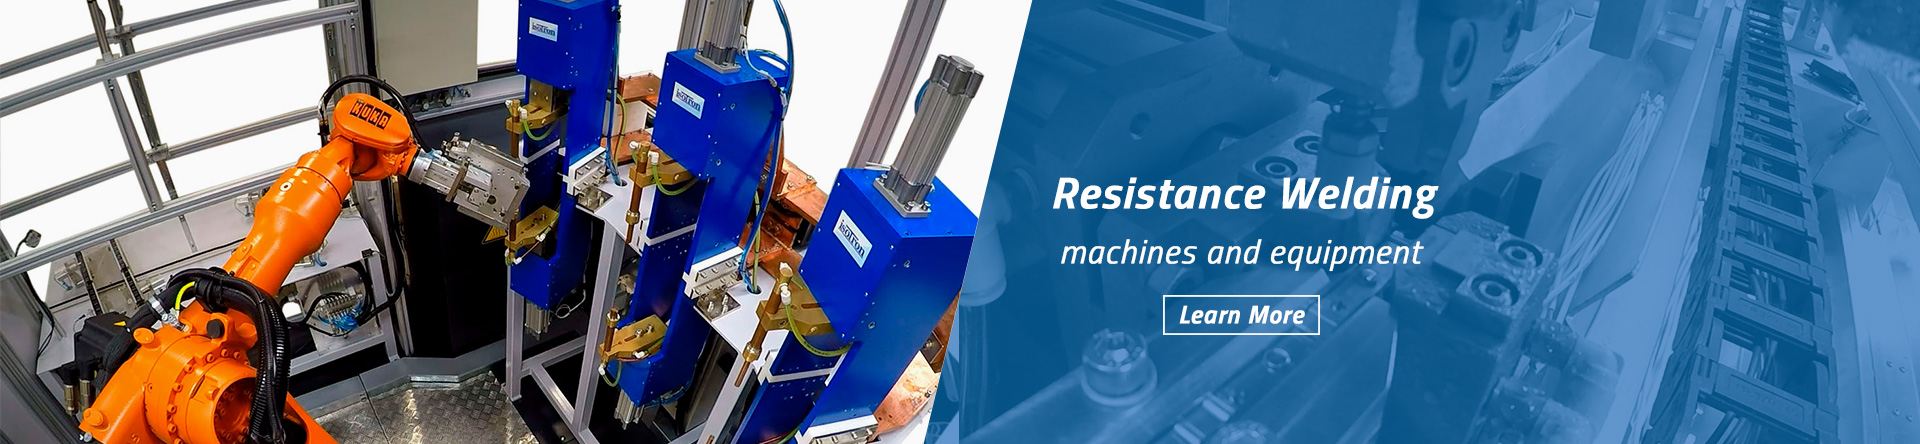 resistance welding machines and equipment